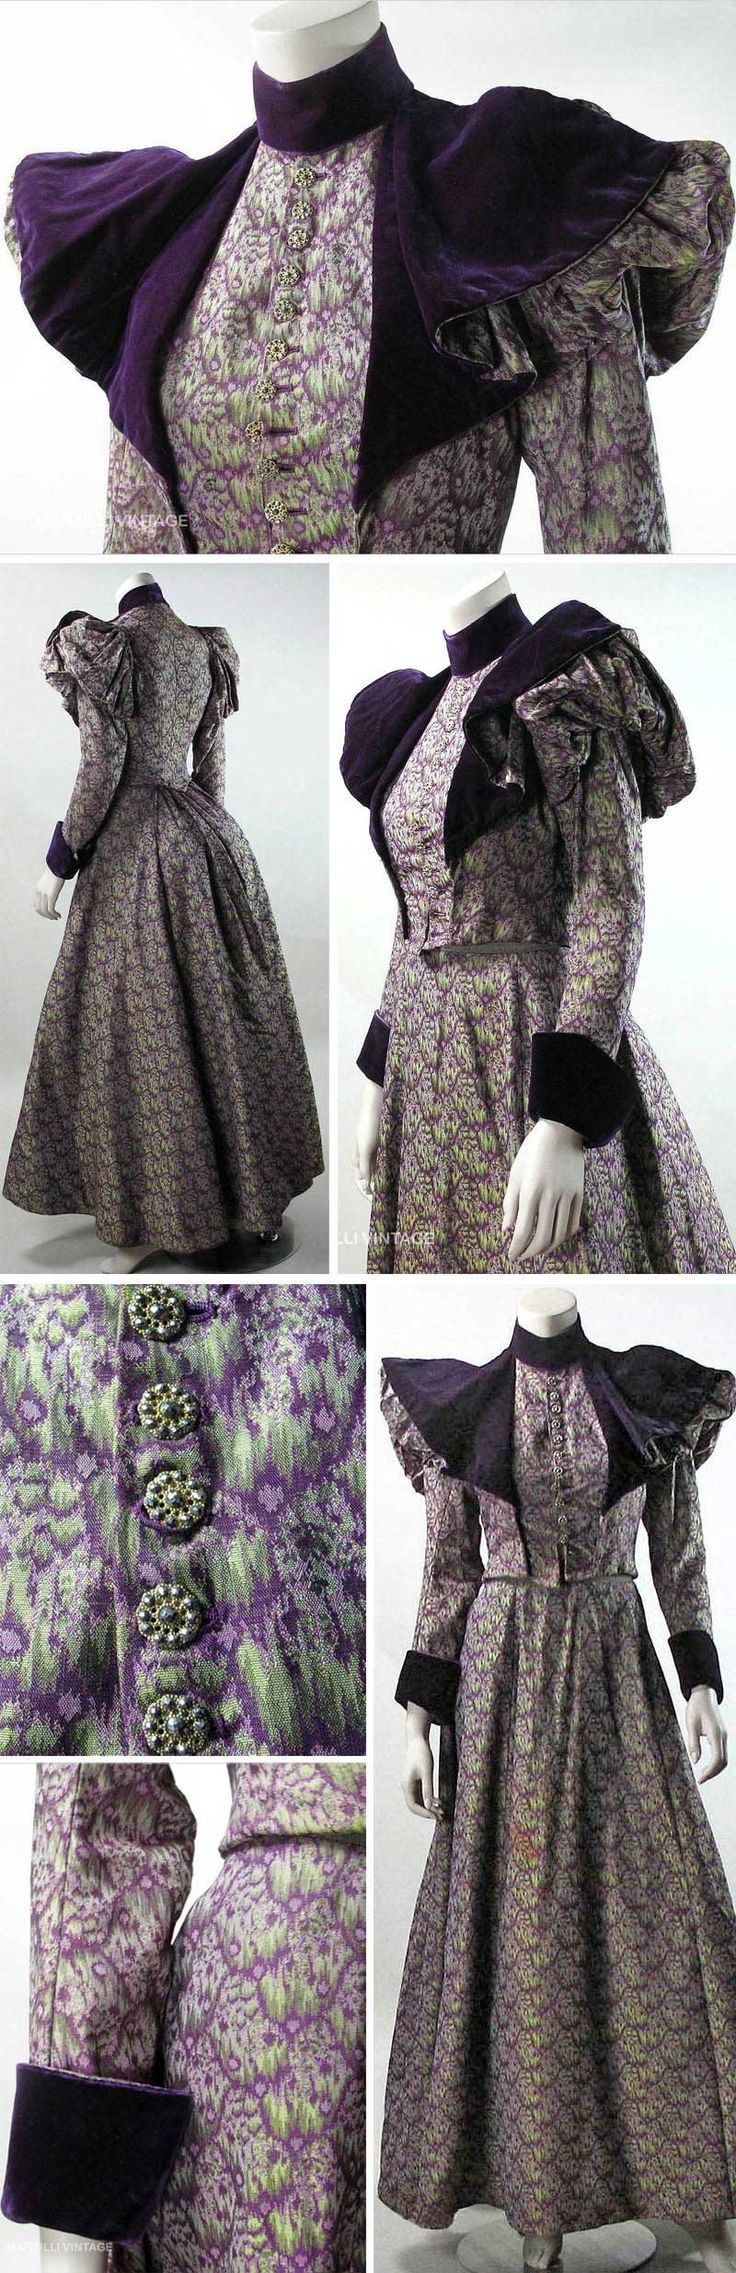 Two-piece bustle dress, ca. 1890s, in heavy green, lavender and purple silk & purple silk velvet. Boned, lined bodice with leg of mutton sleeves overlaid with cape-like expanse of velvet, matching velvet stand-up collar & gauntlet cuffs. Twilled wool petersham with hook & eye closure and cut-steel and brass-filigree buttons. Bustle skirt has purple velvet band inside hemline, black polished cotton lining & twilled waistband with hooks & eyes. Marzilli Vintage/Ruby Lane